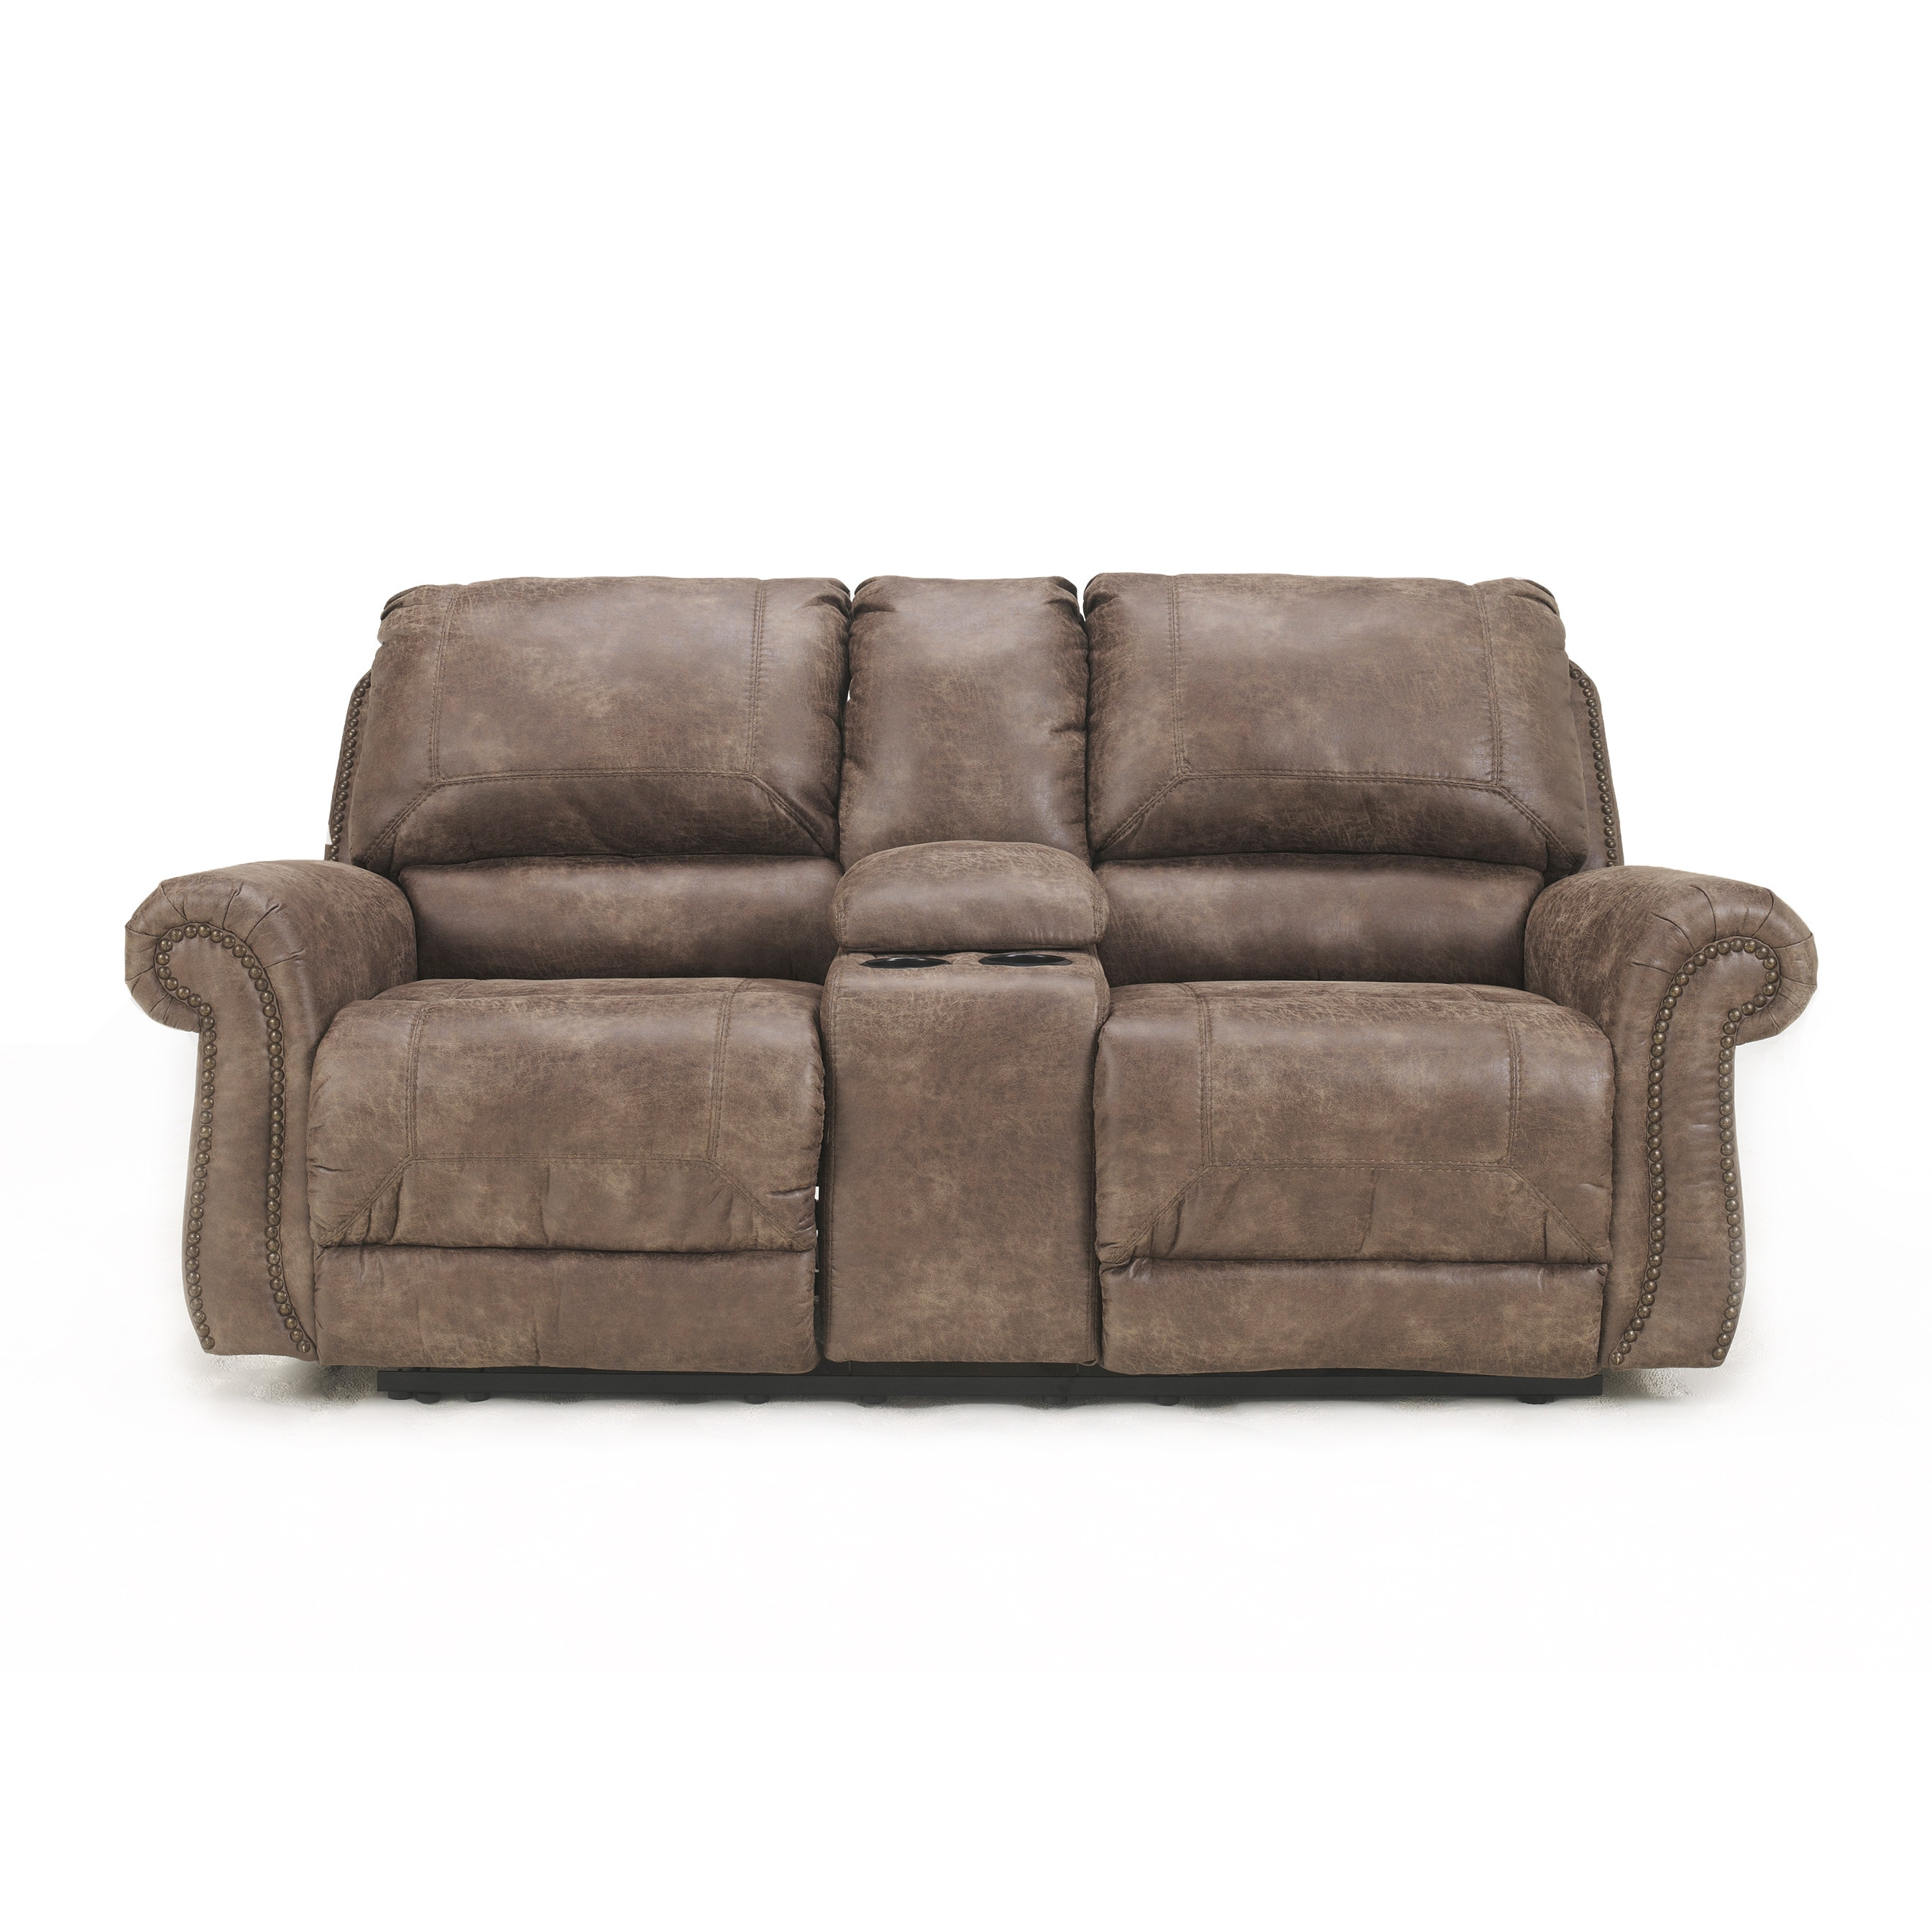 fabric christopher plum garden velvet loveseat shipping overstock leora free knight wingback home by tufted today product